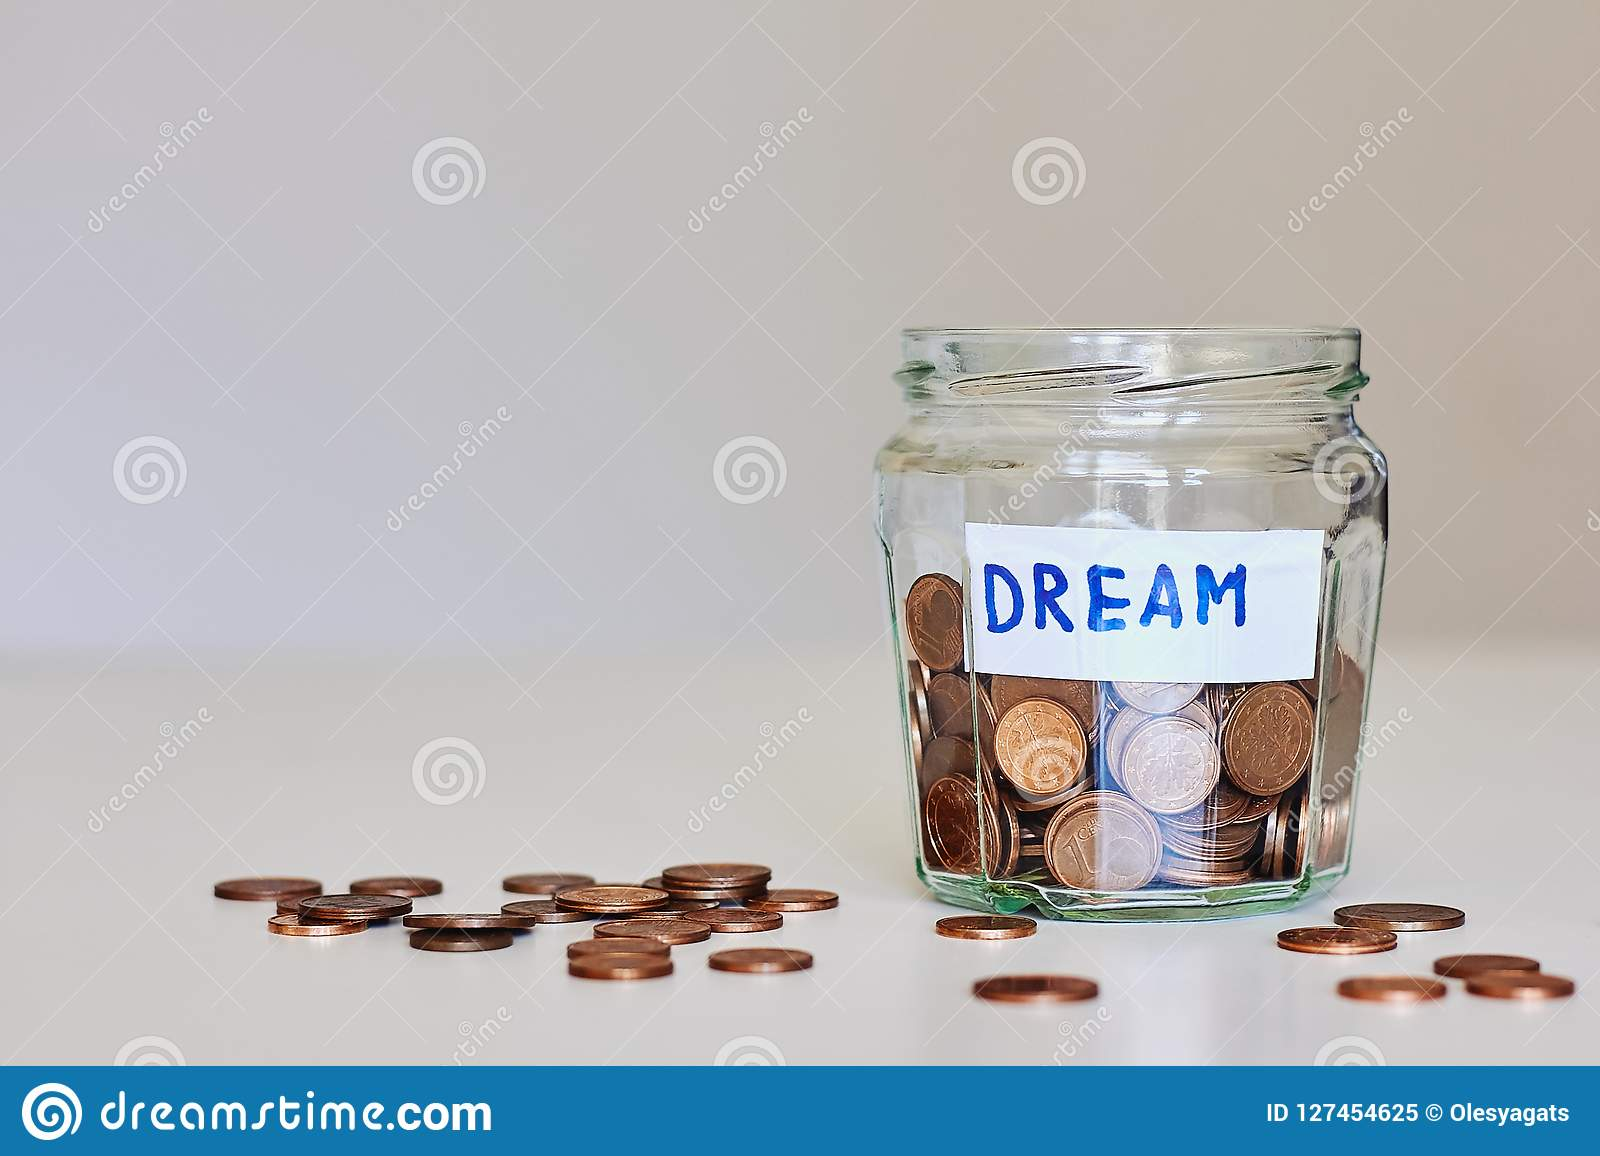 Saving money for dream concept. Glass jar full of coins and sign dream